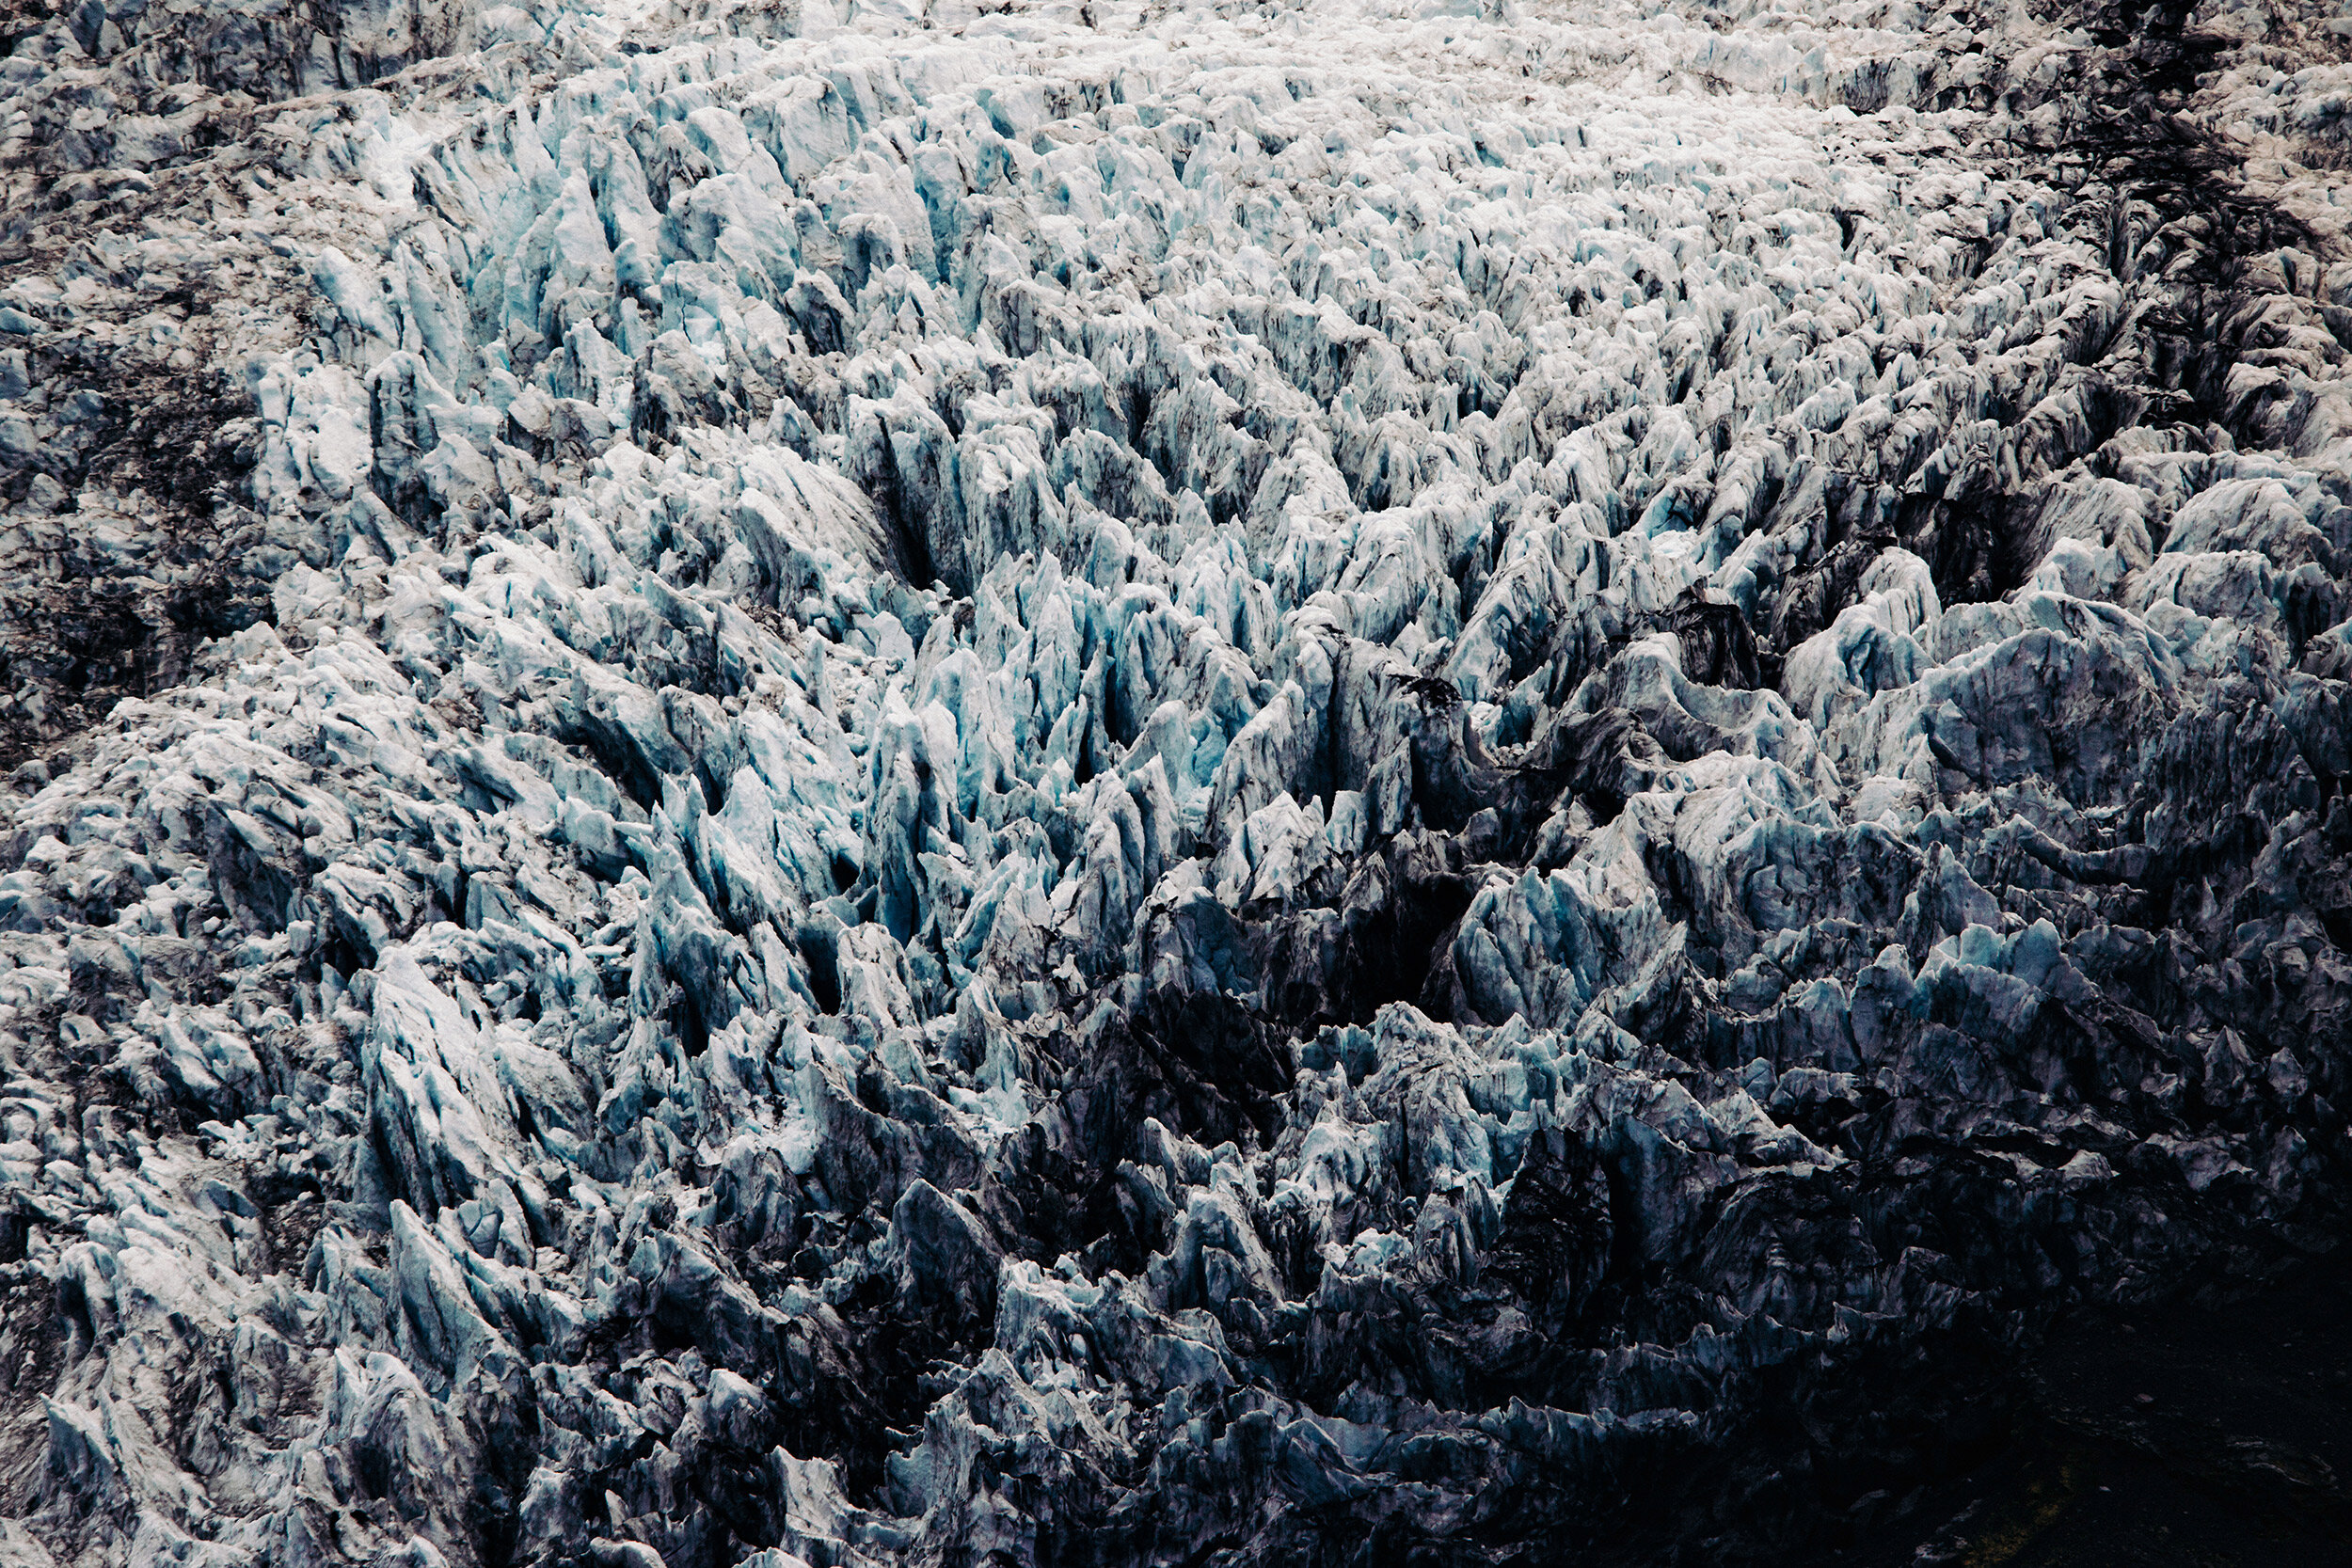 Massive glacier closeup in Iceland's eastern region.